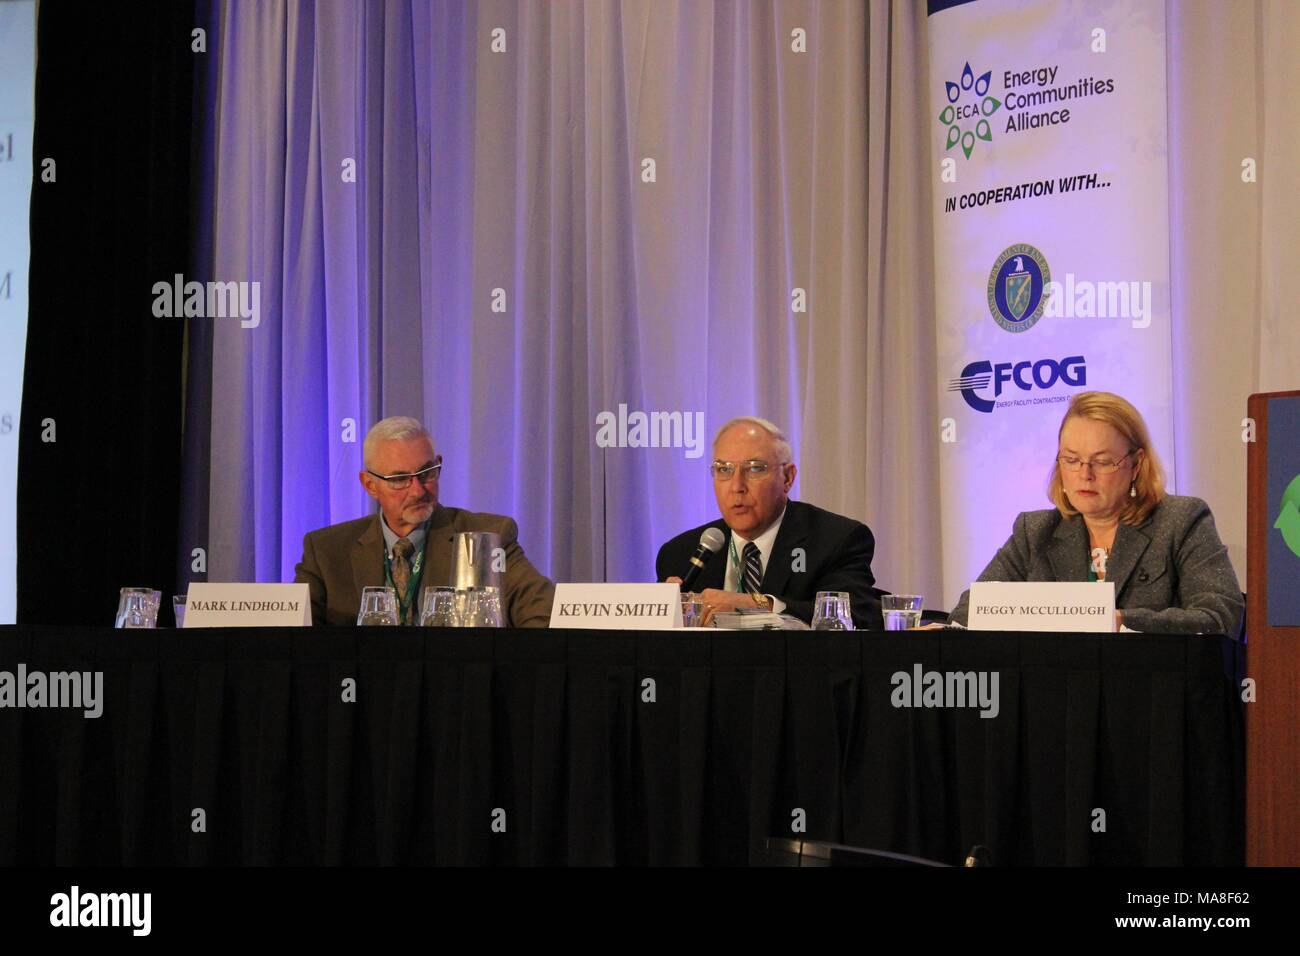 Three members of a panel, including Mark Lindholm, Kevin Smith, and Peggy McCullough, seated behind a long, black skirted table, at the United States Department of Energy (DOE) 2016 National Cleanup Workshop, held in cooperation with the Energy Communities Alliance (ECA) and FCOG, September 14-15, at the Hilton Alexandria Mark Center in Alexandria, Virginia, Image courtesy US Department of Energy, 2016. () - Stock Image